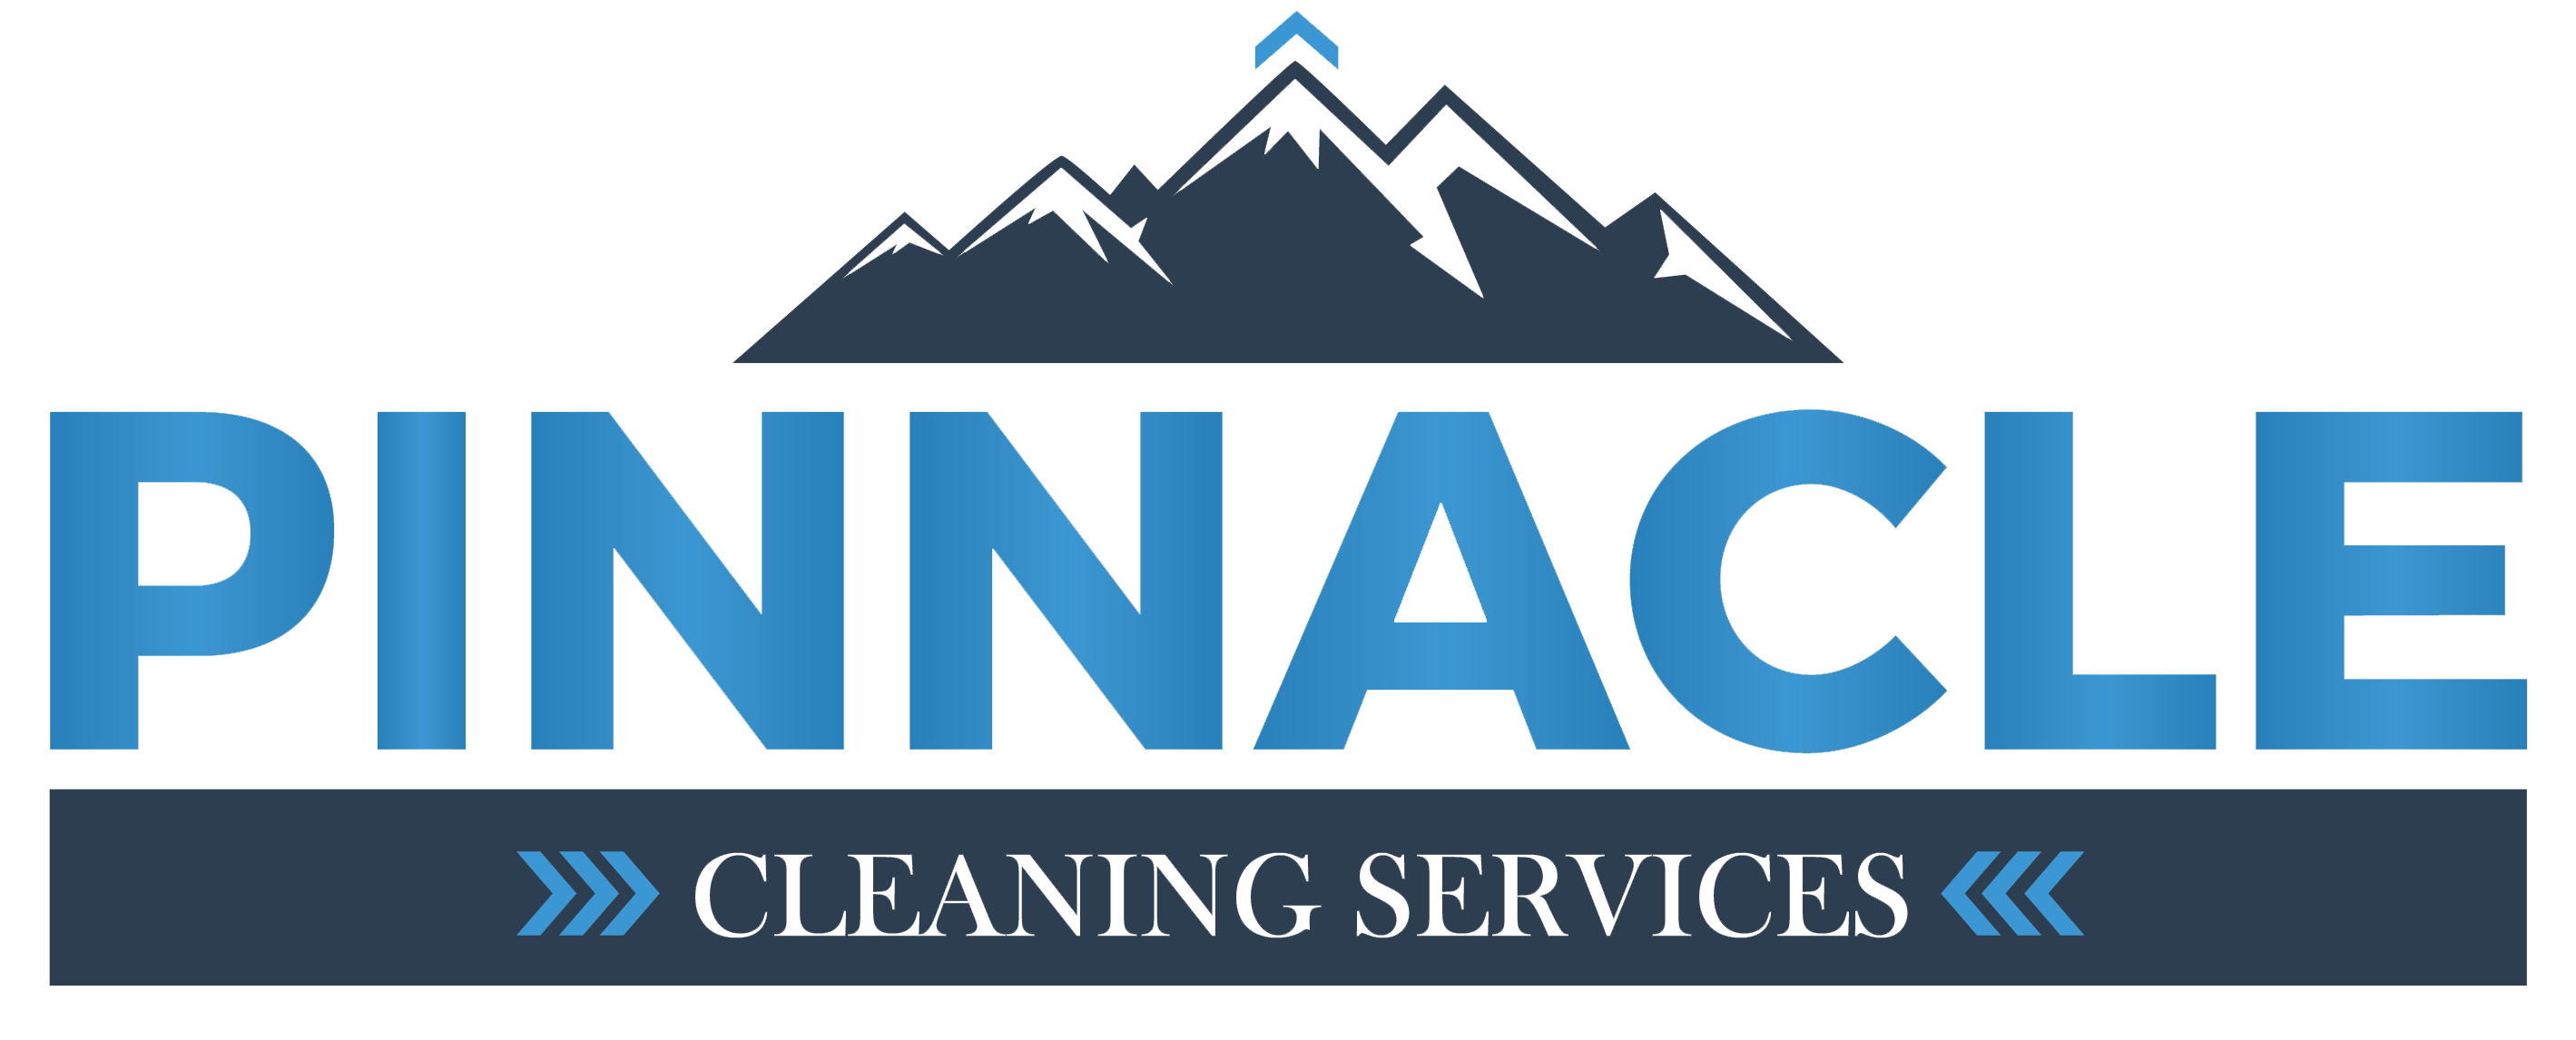 Pinnacle Cleaning Services Logo